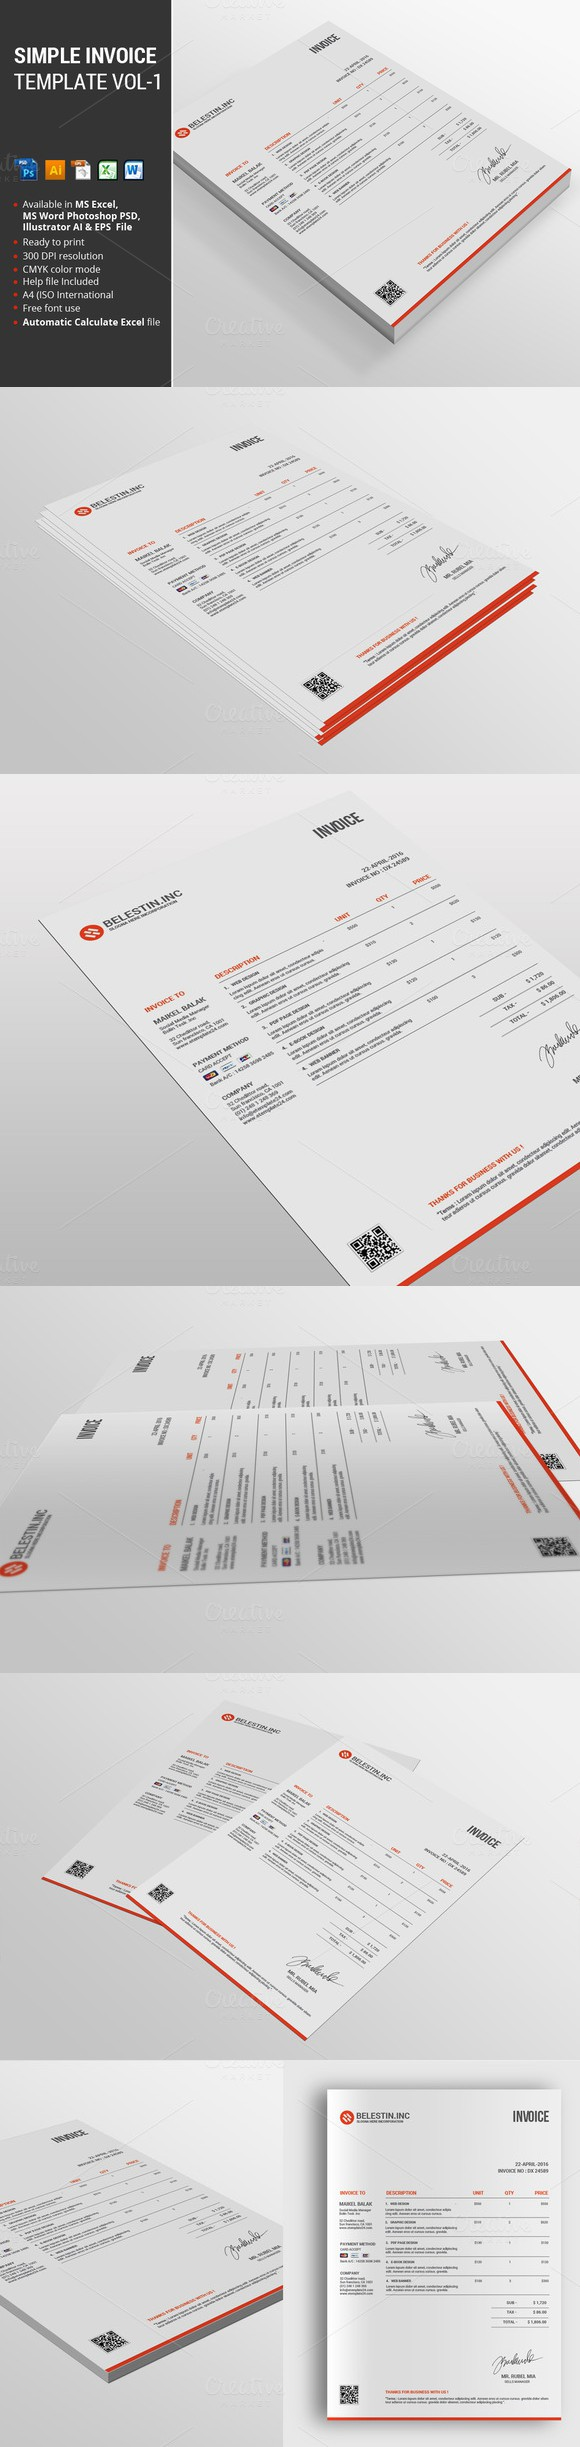 Simple Invoice Template Vol  Stationery Templates